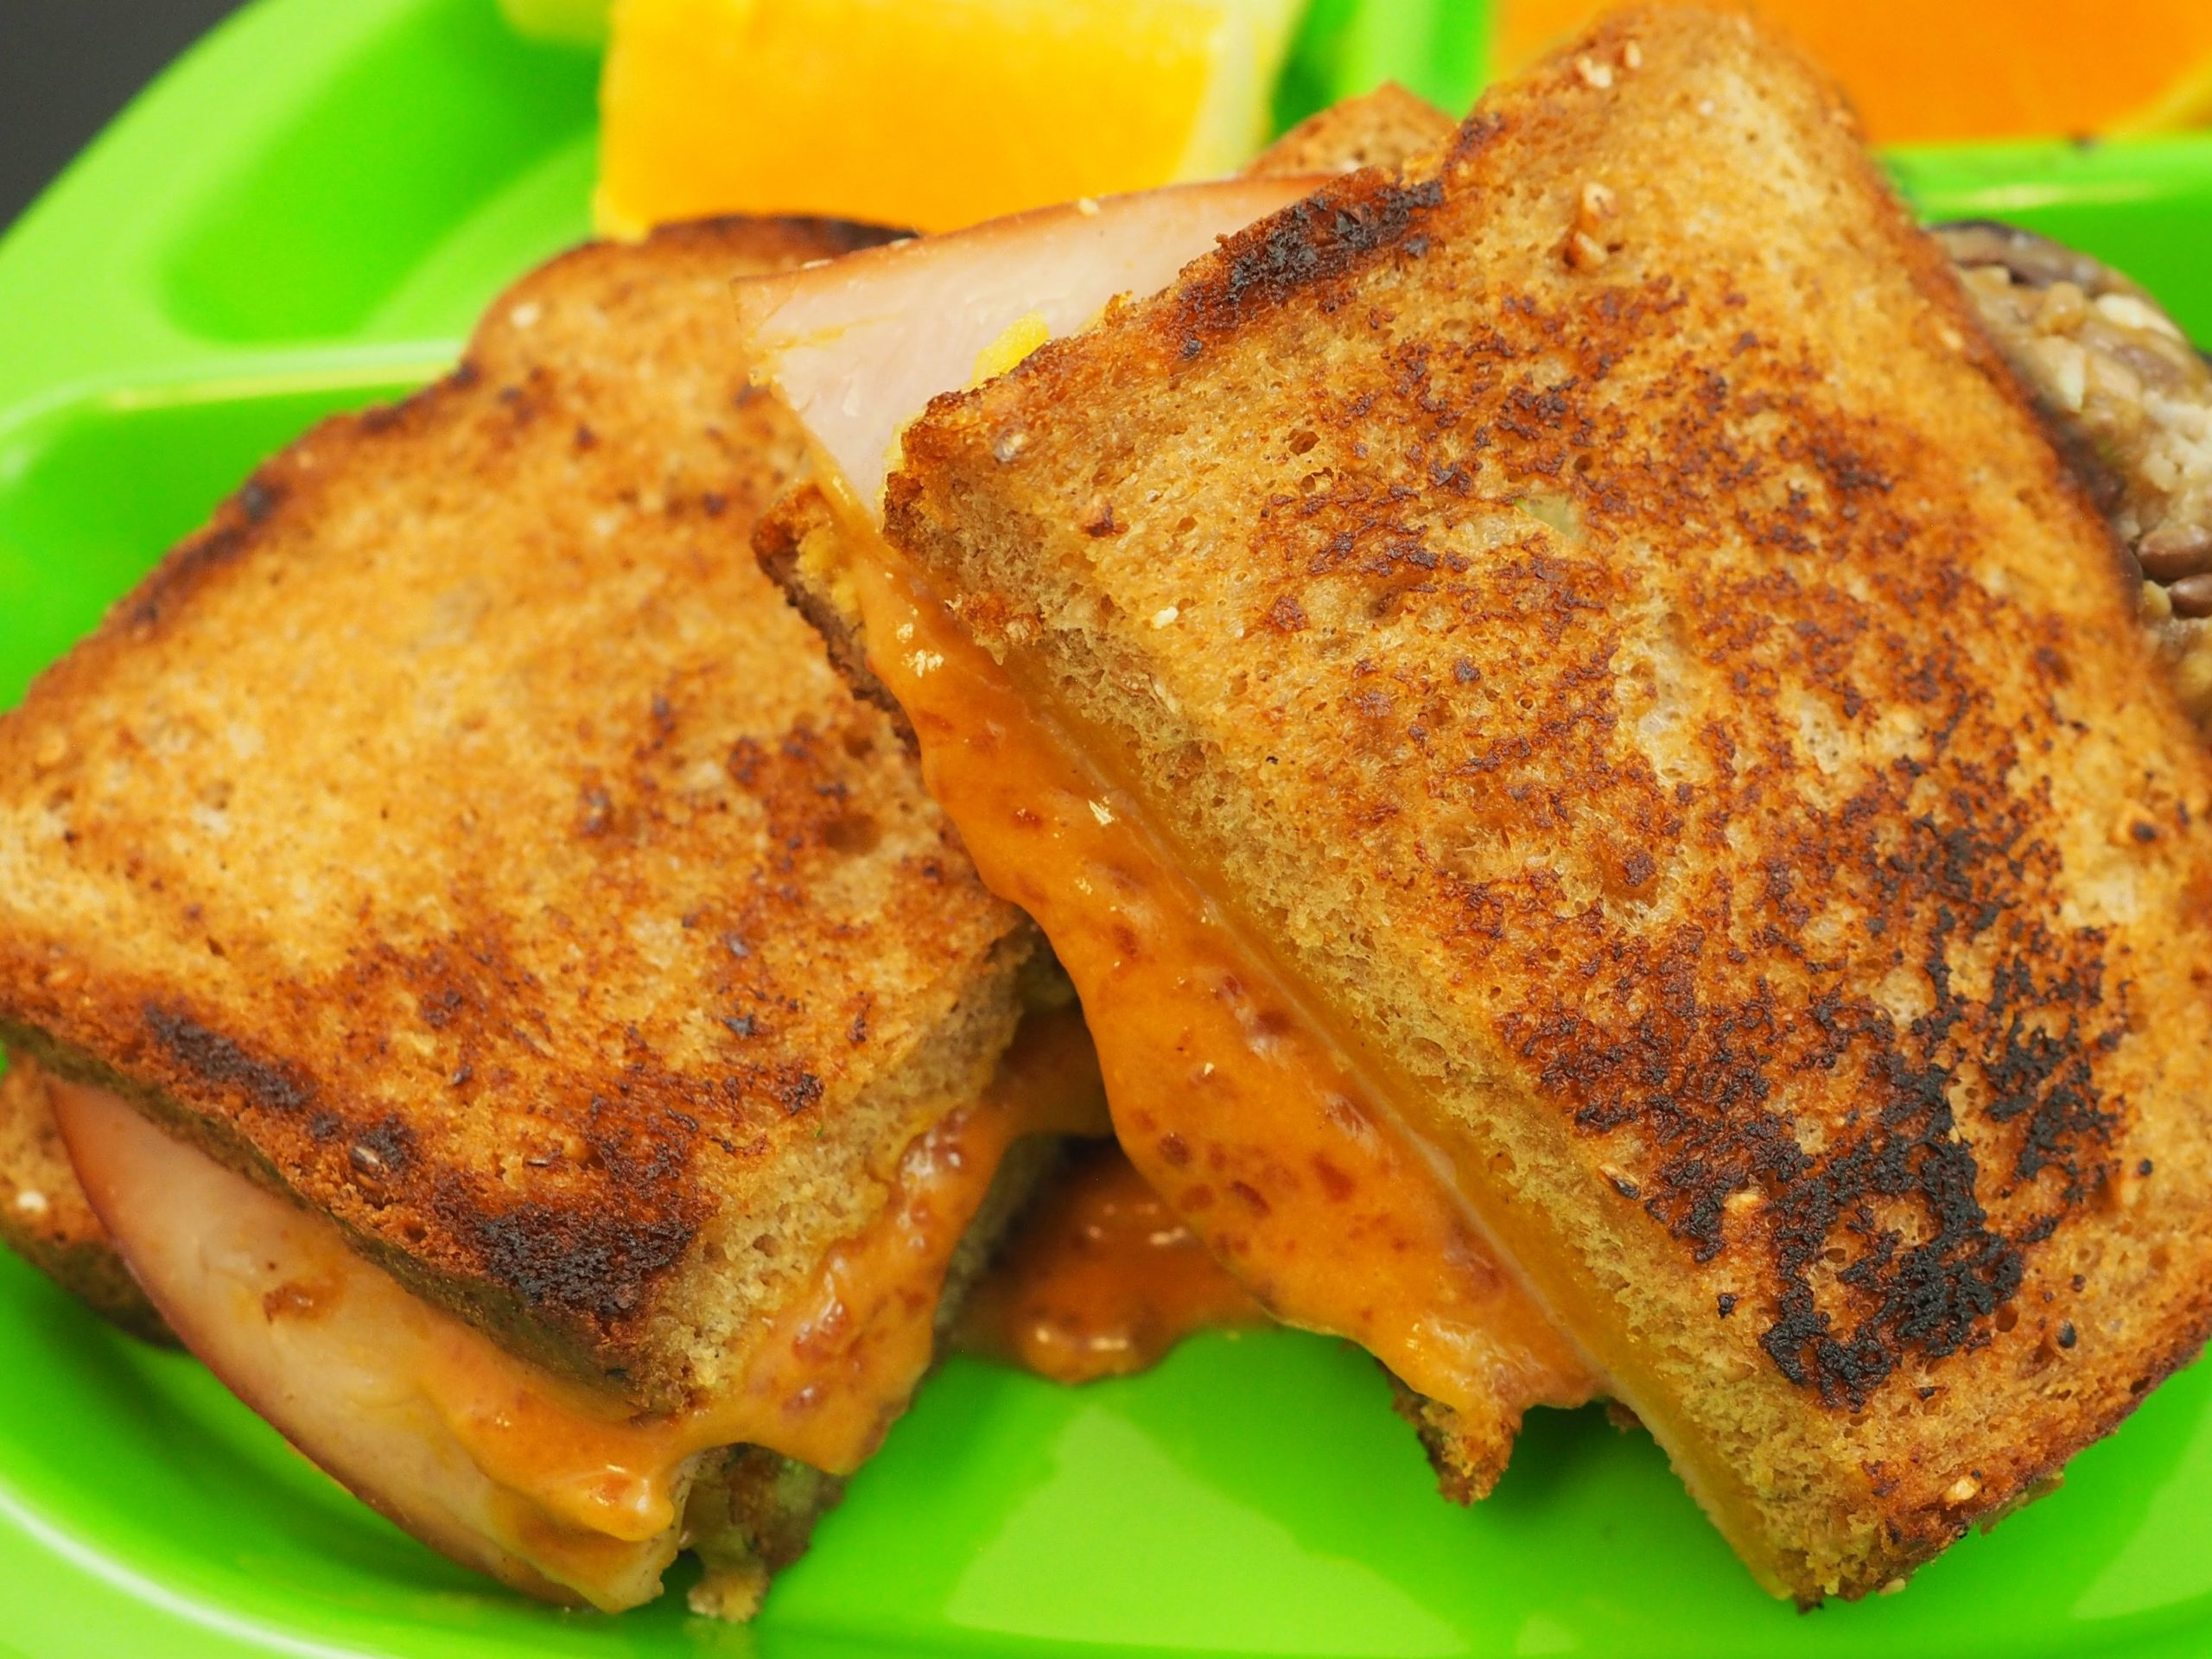 Turkey and Cheddar Grilled Cheese with Cranberry Mustard